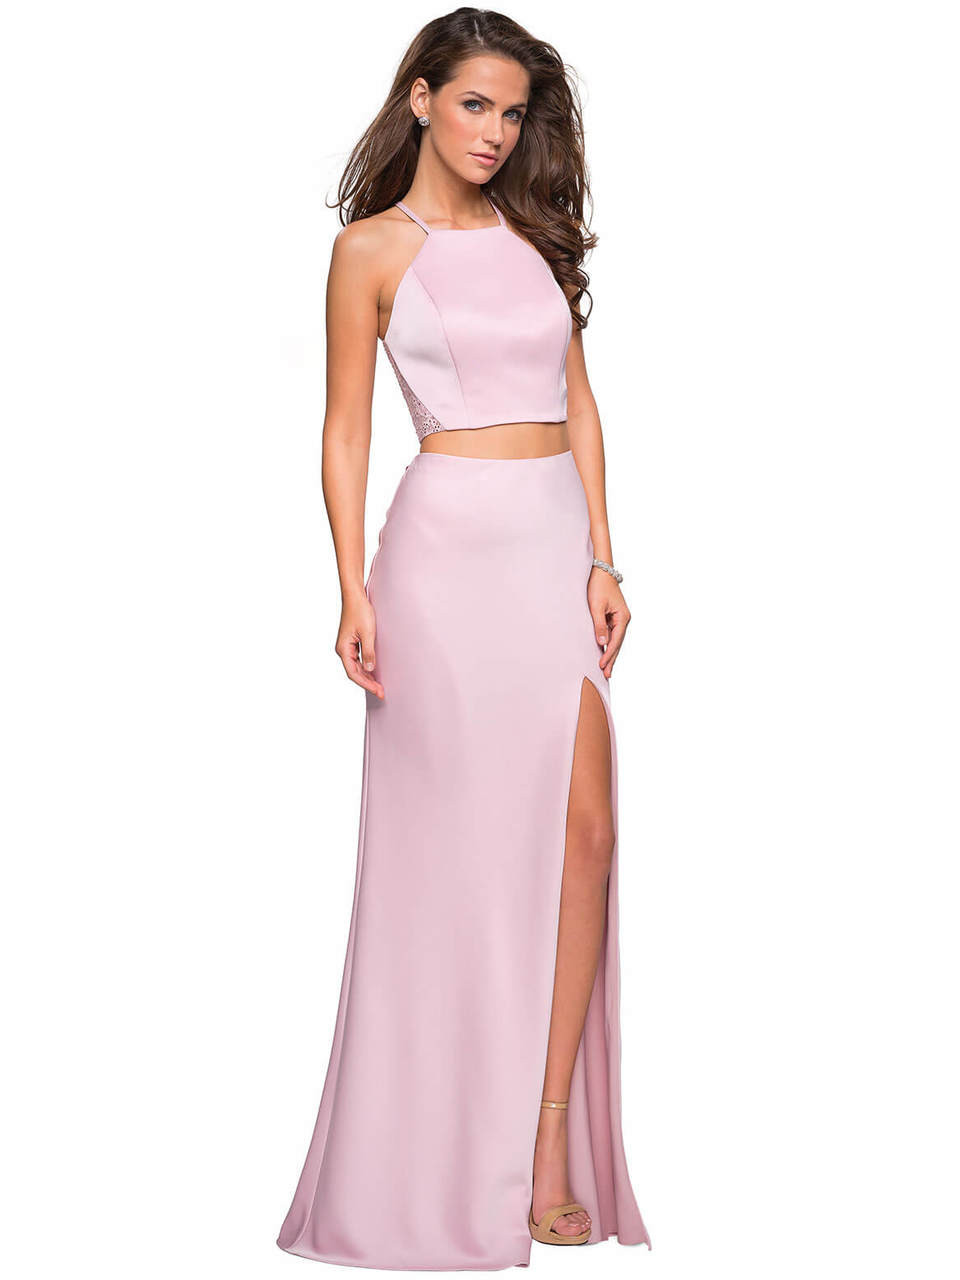 b0d415a054 Racerback Two-Piece La Femme Prom Dress 26926